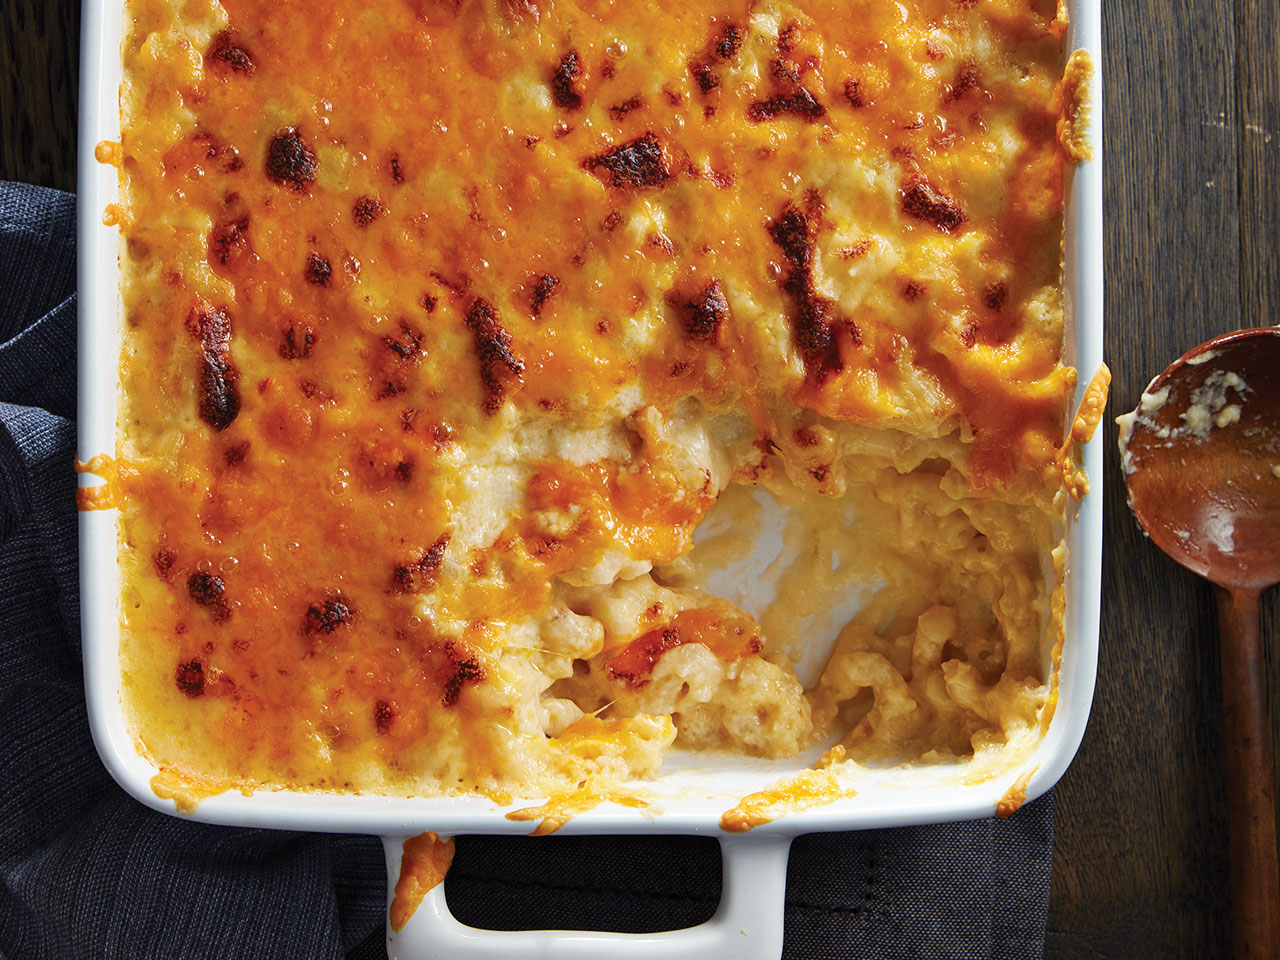 classic macaroni and cheese baked pasta recipe